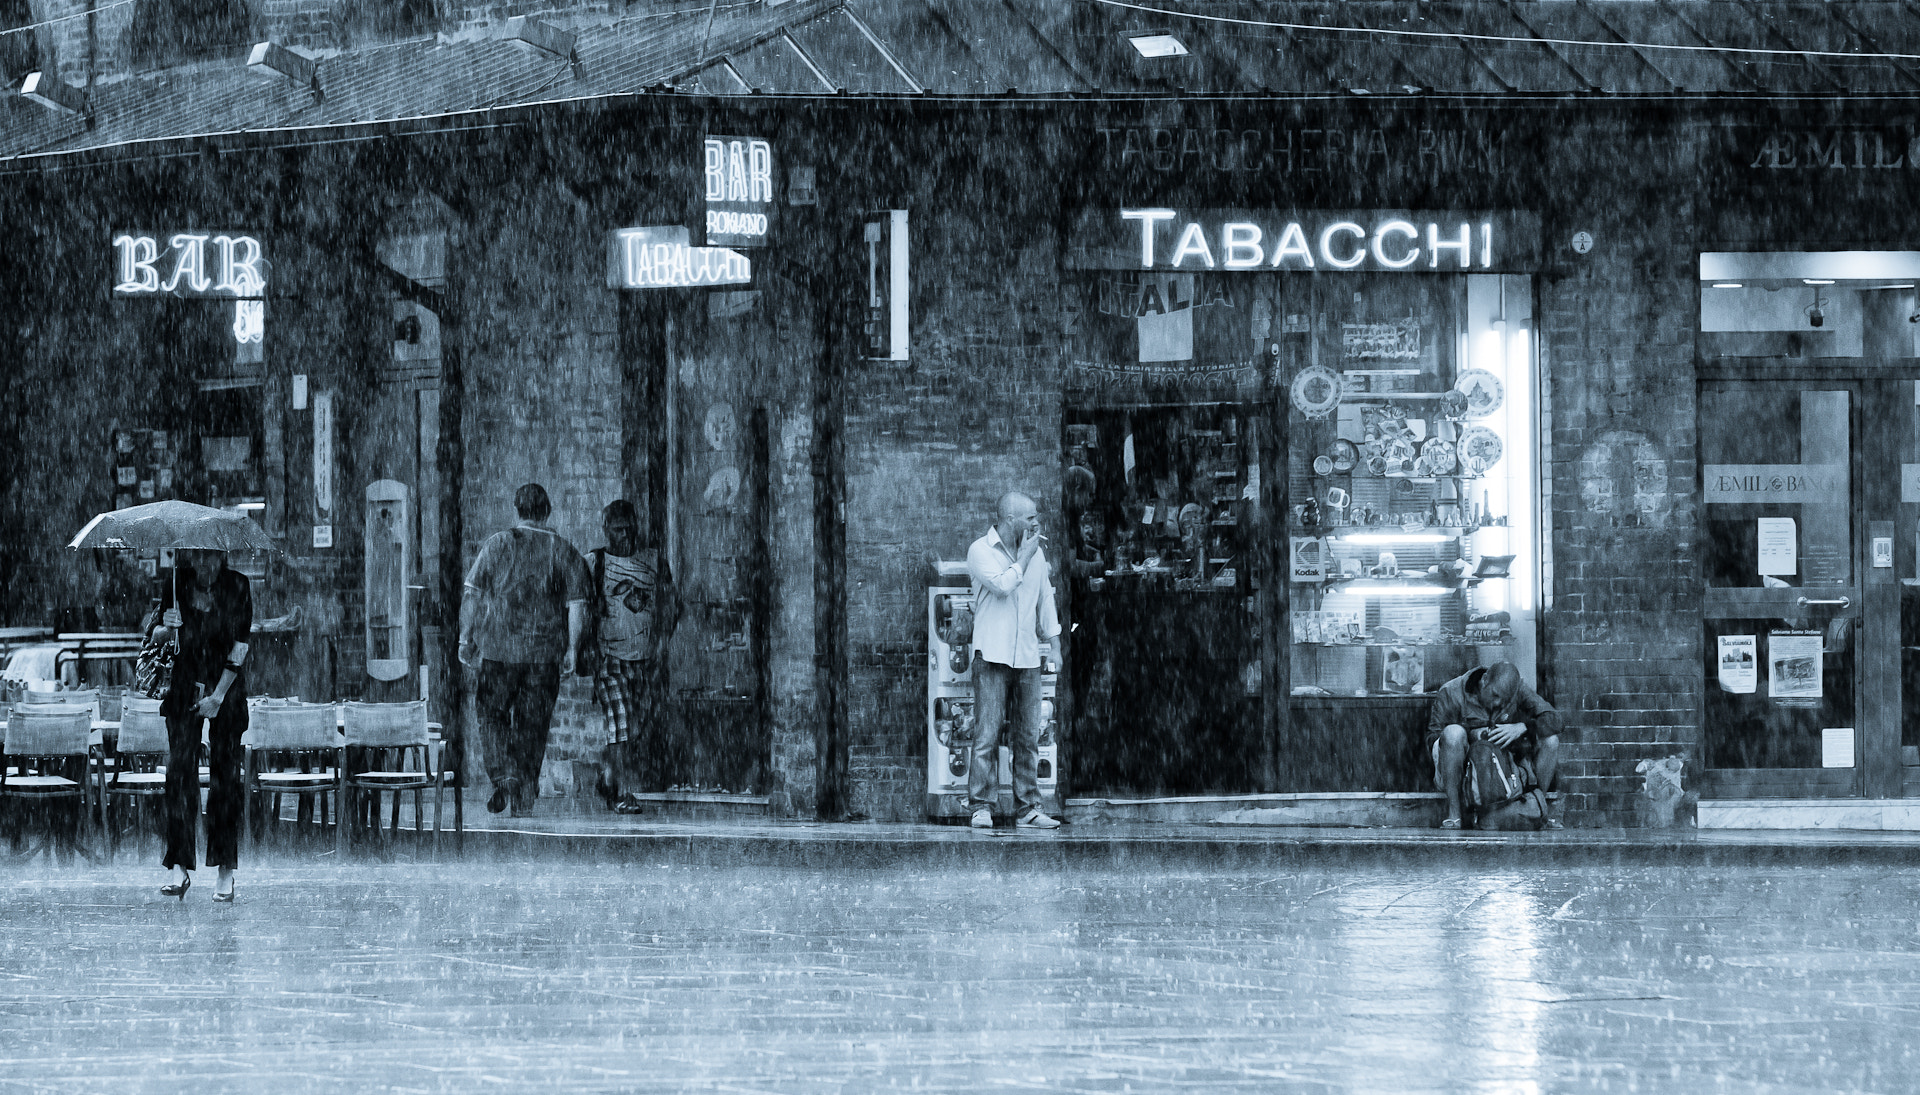 Photograph Rainy day at the bar by Michael Avory on 500px